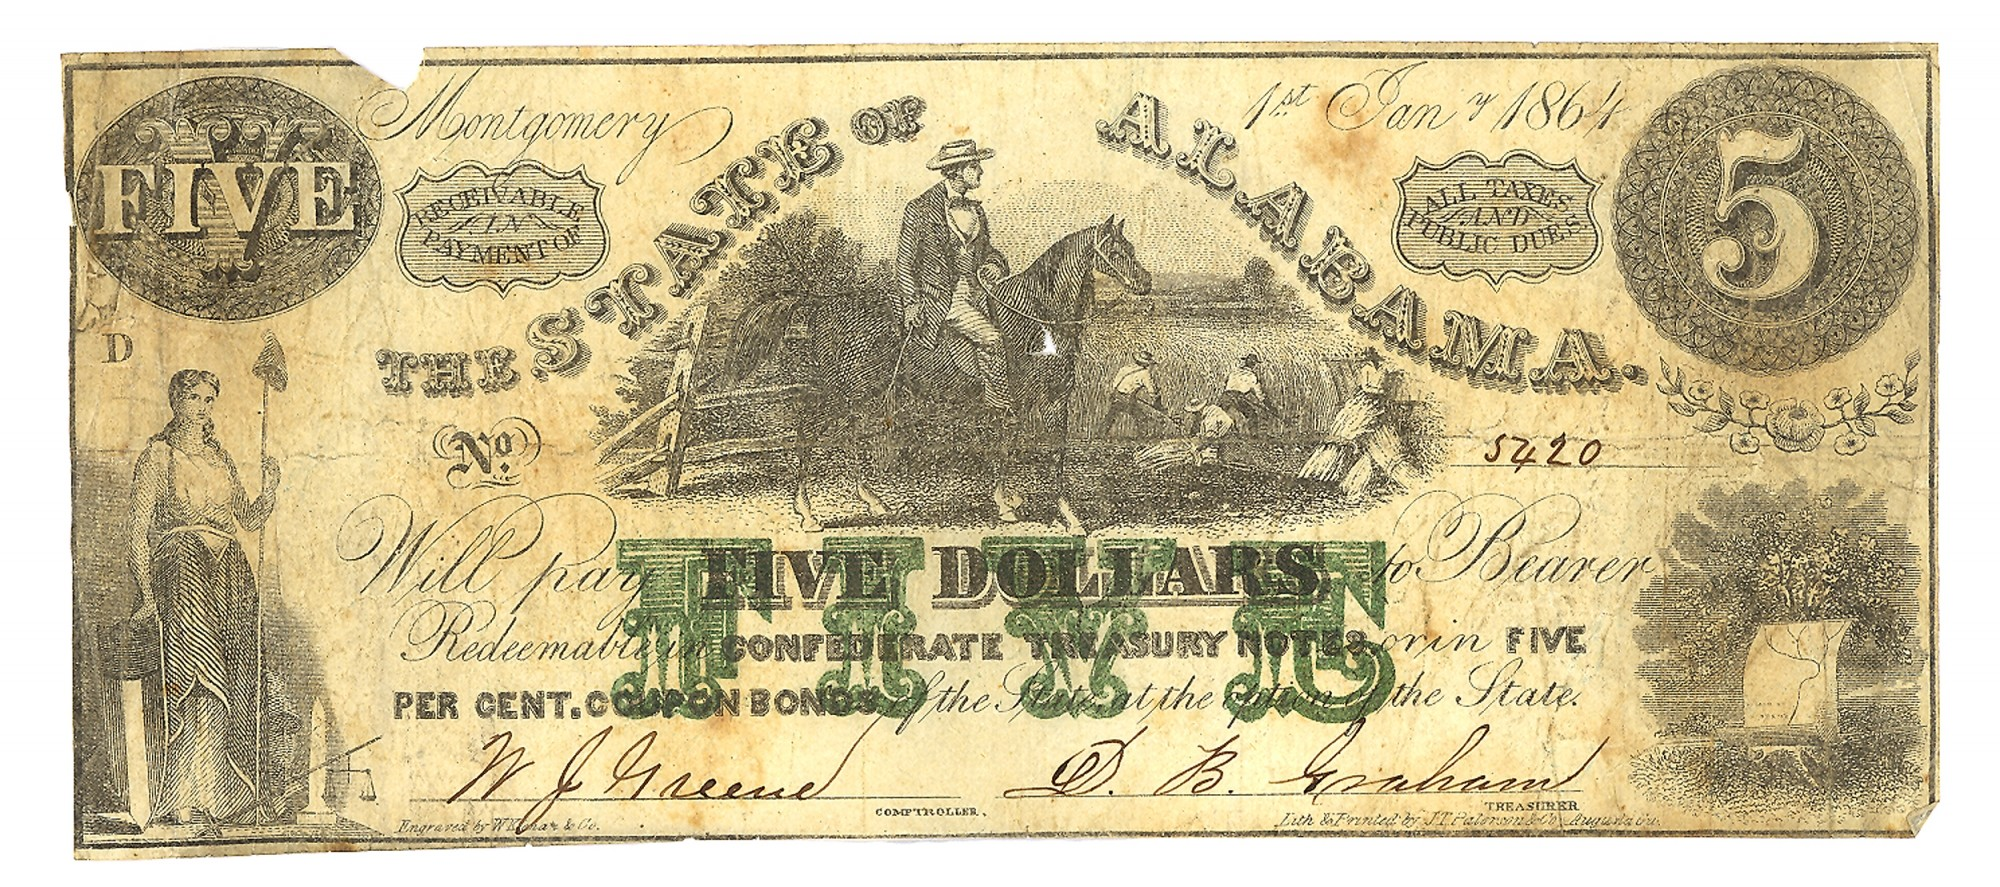 STATE OF ALABAMA $5 NOTE